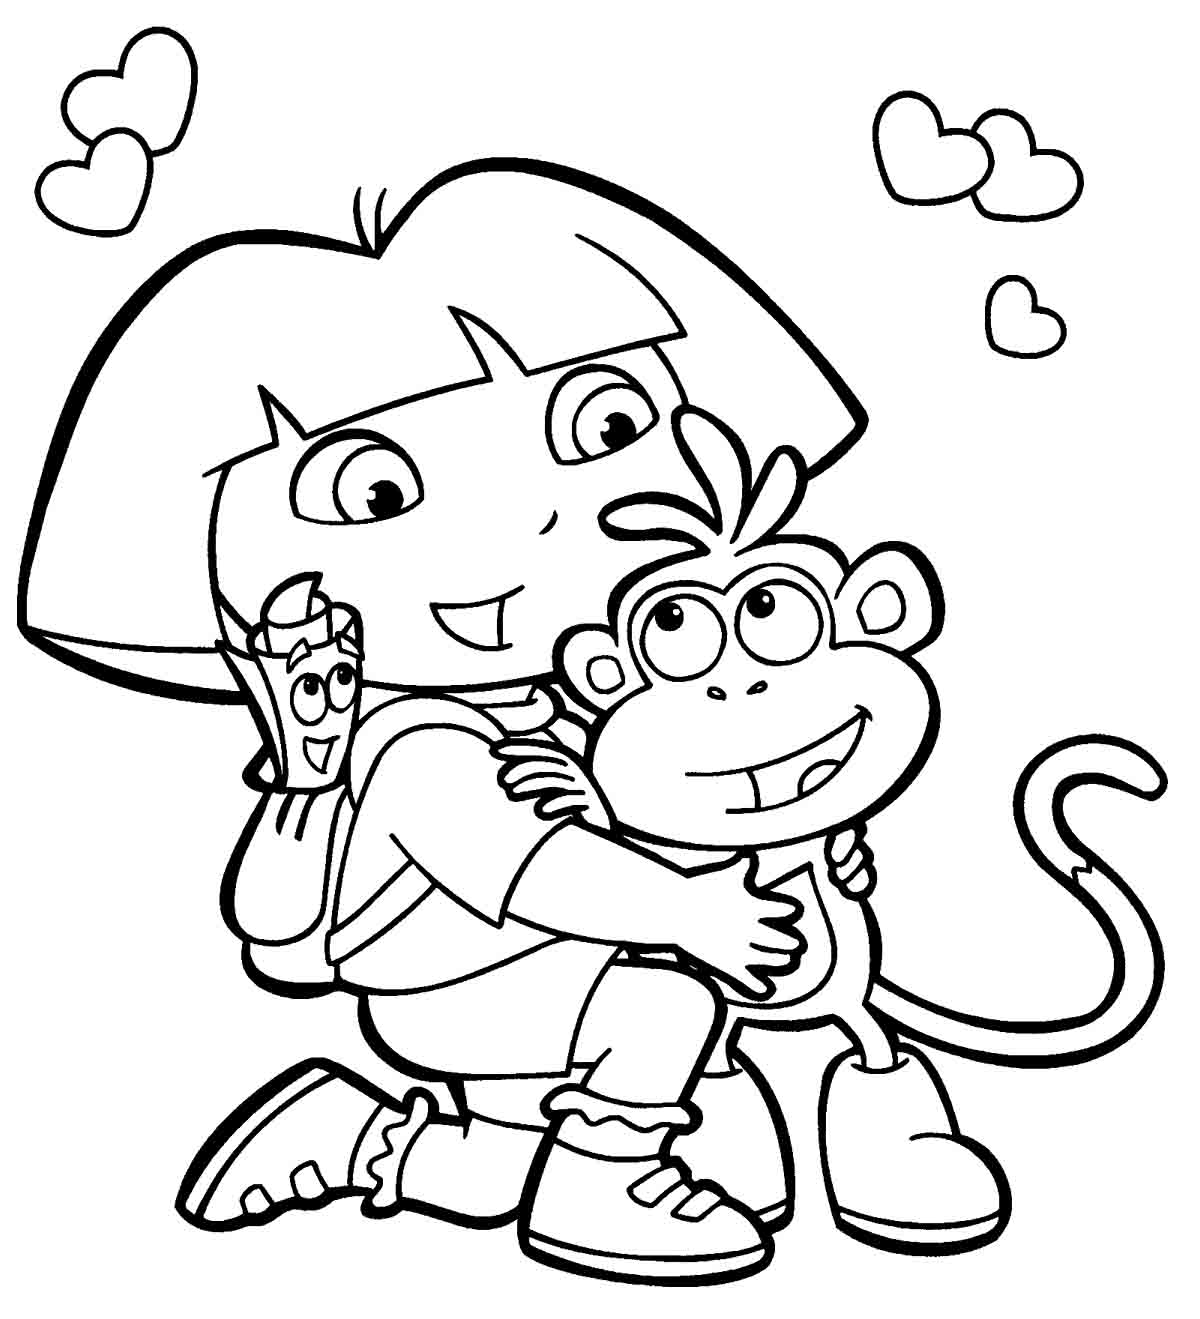 Cuddle coloring #15, Download drawings